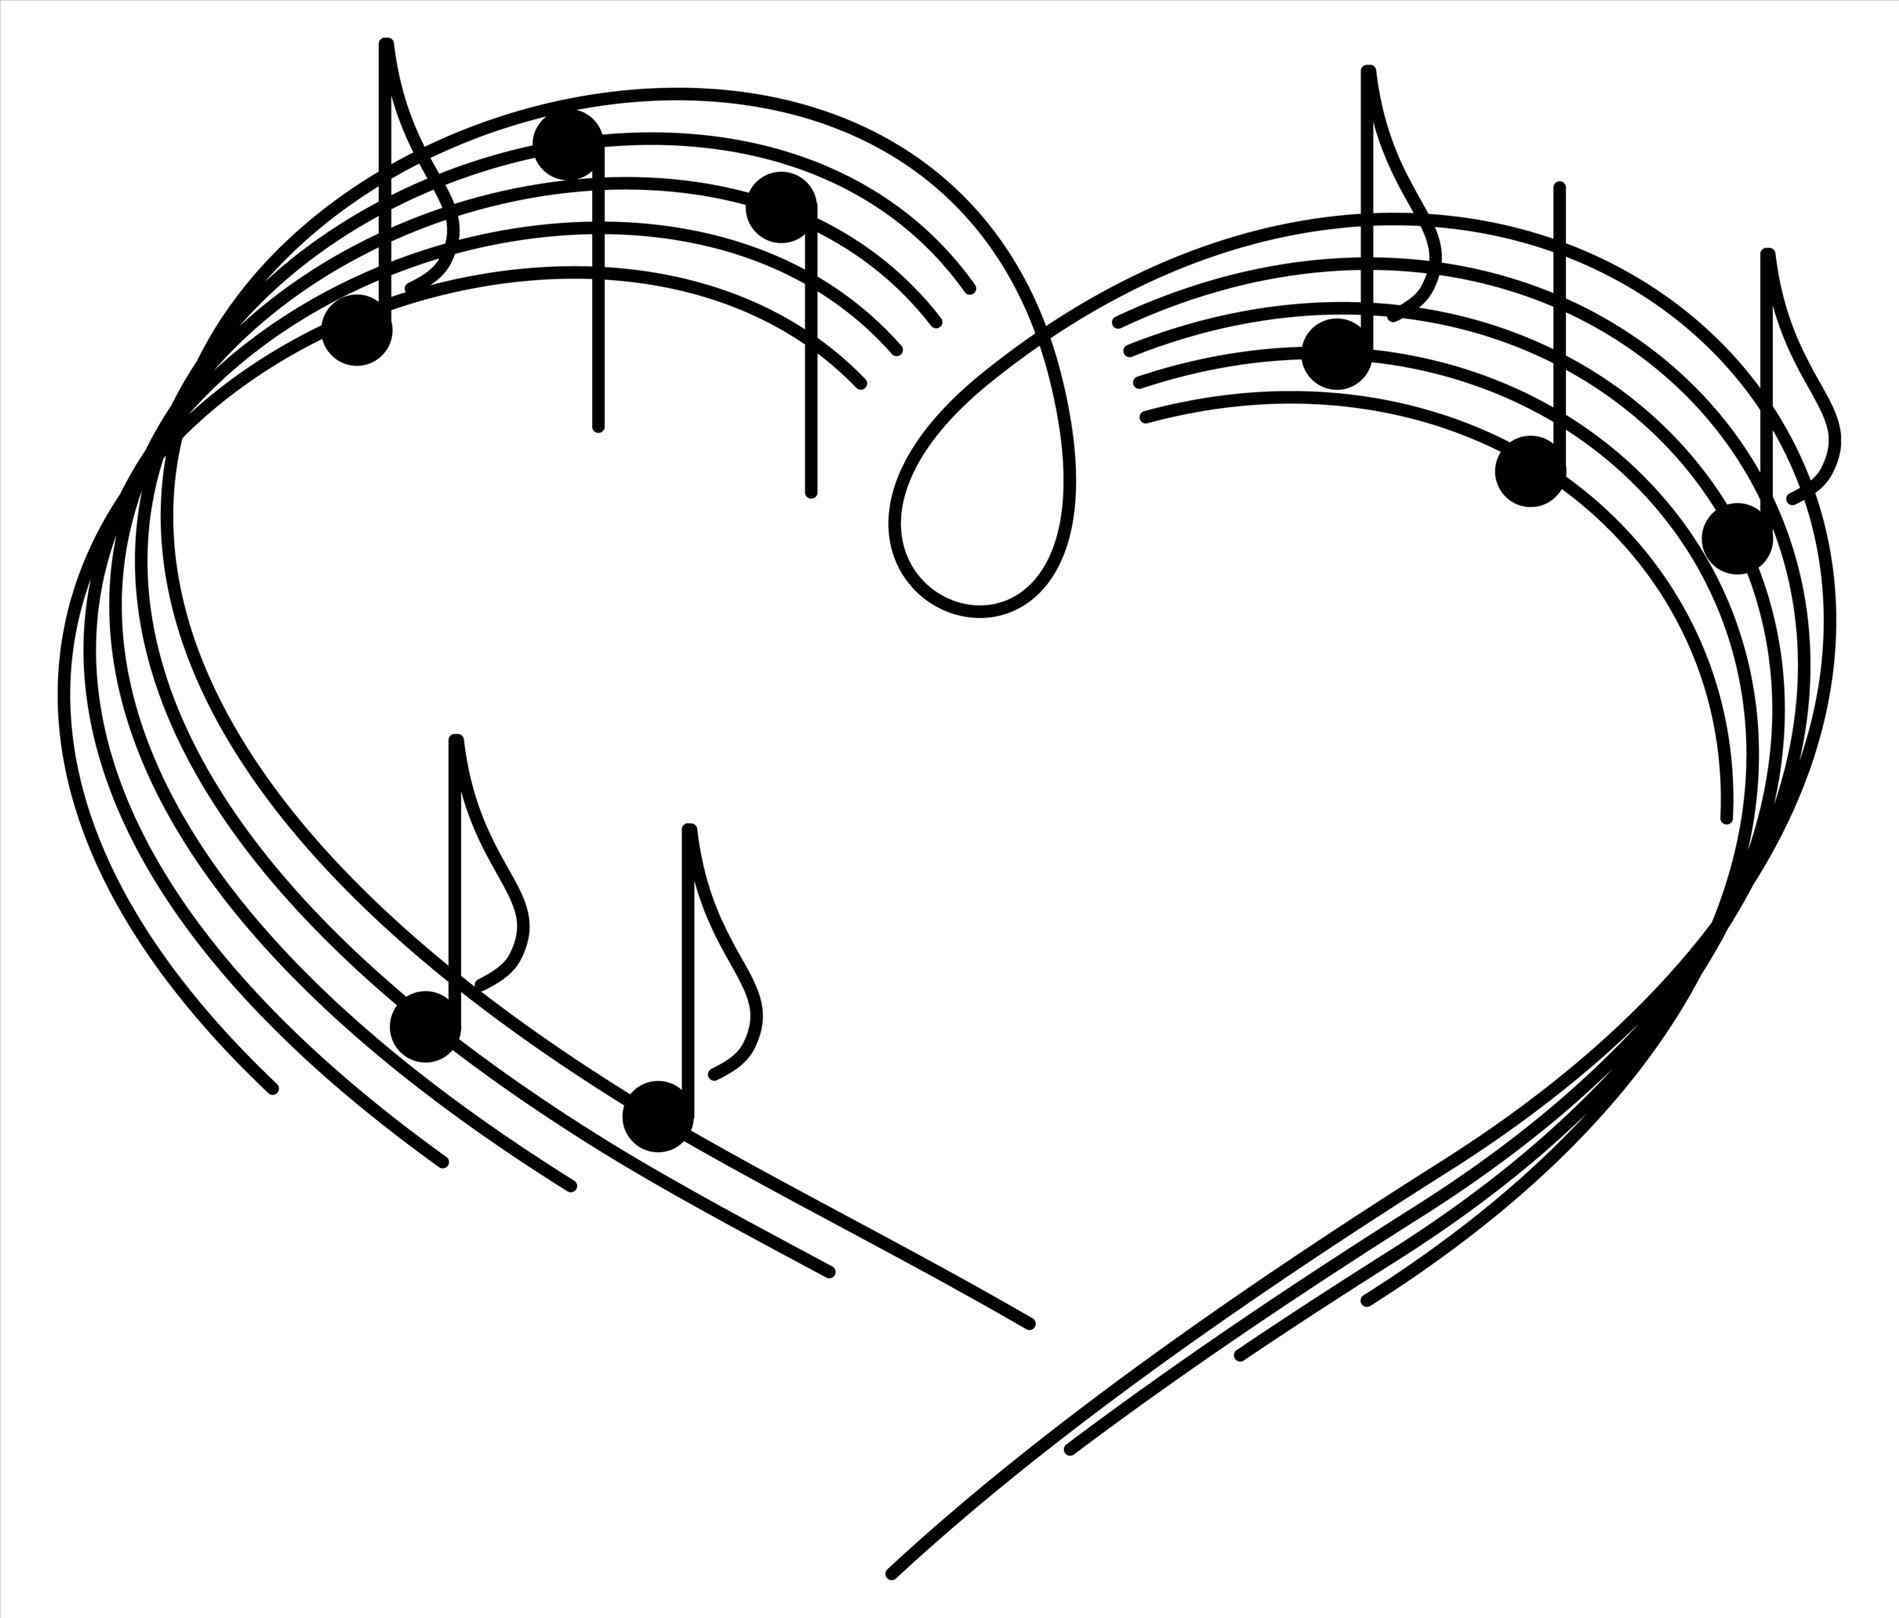 1899x1618 Free Music Note And Heart Drawings S Clipart Image Clef Stock